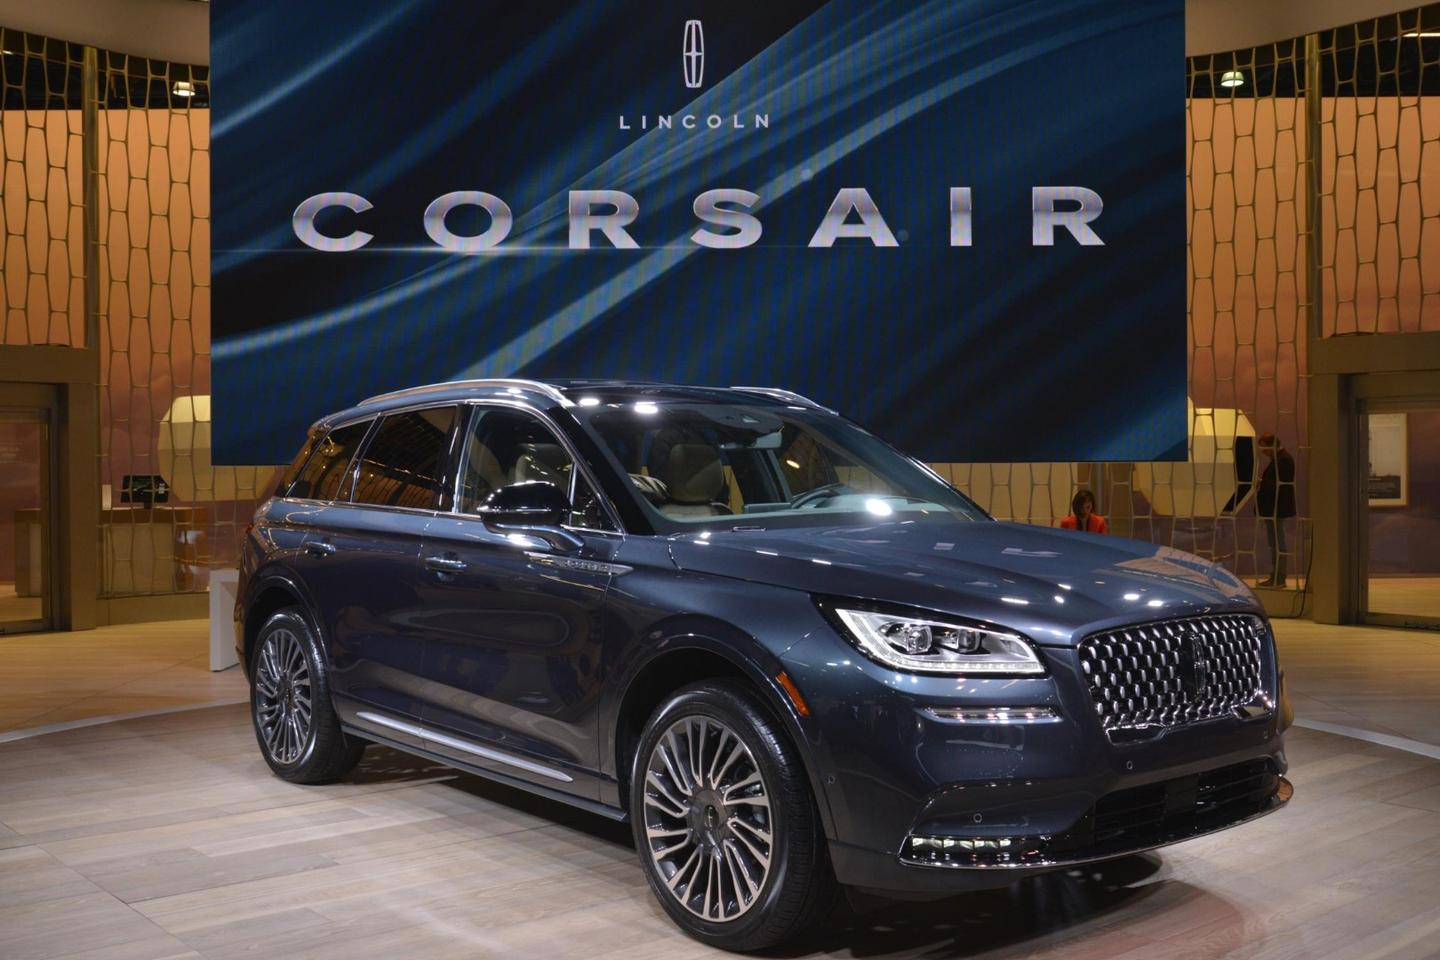 Lincoln introduces the baby of its SUV family, the Corsair